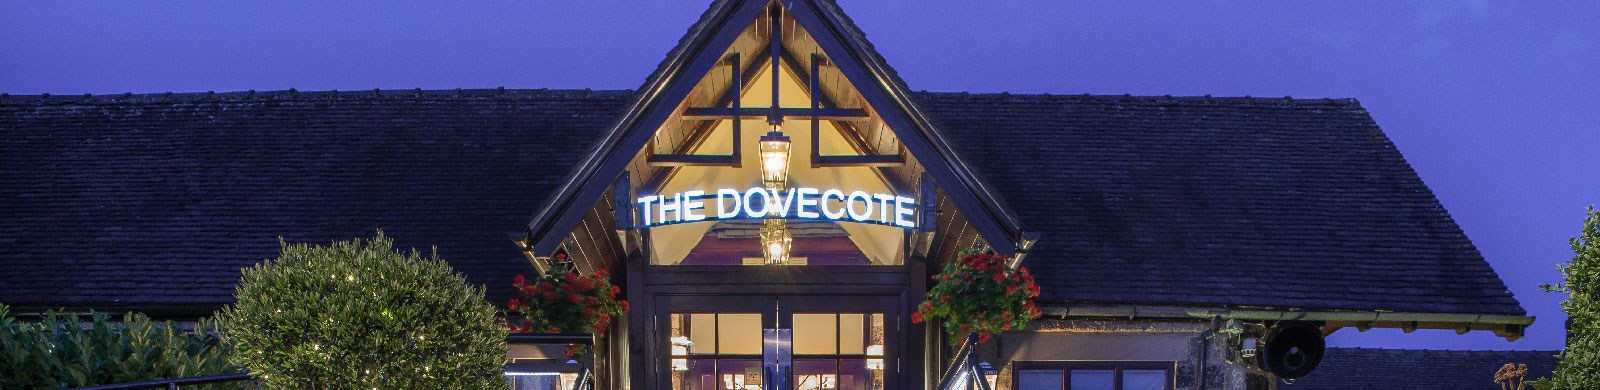 Dine in the Dovecote Restaurant